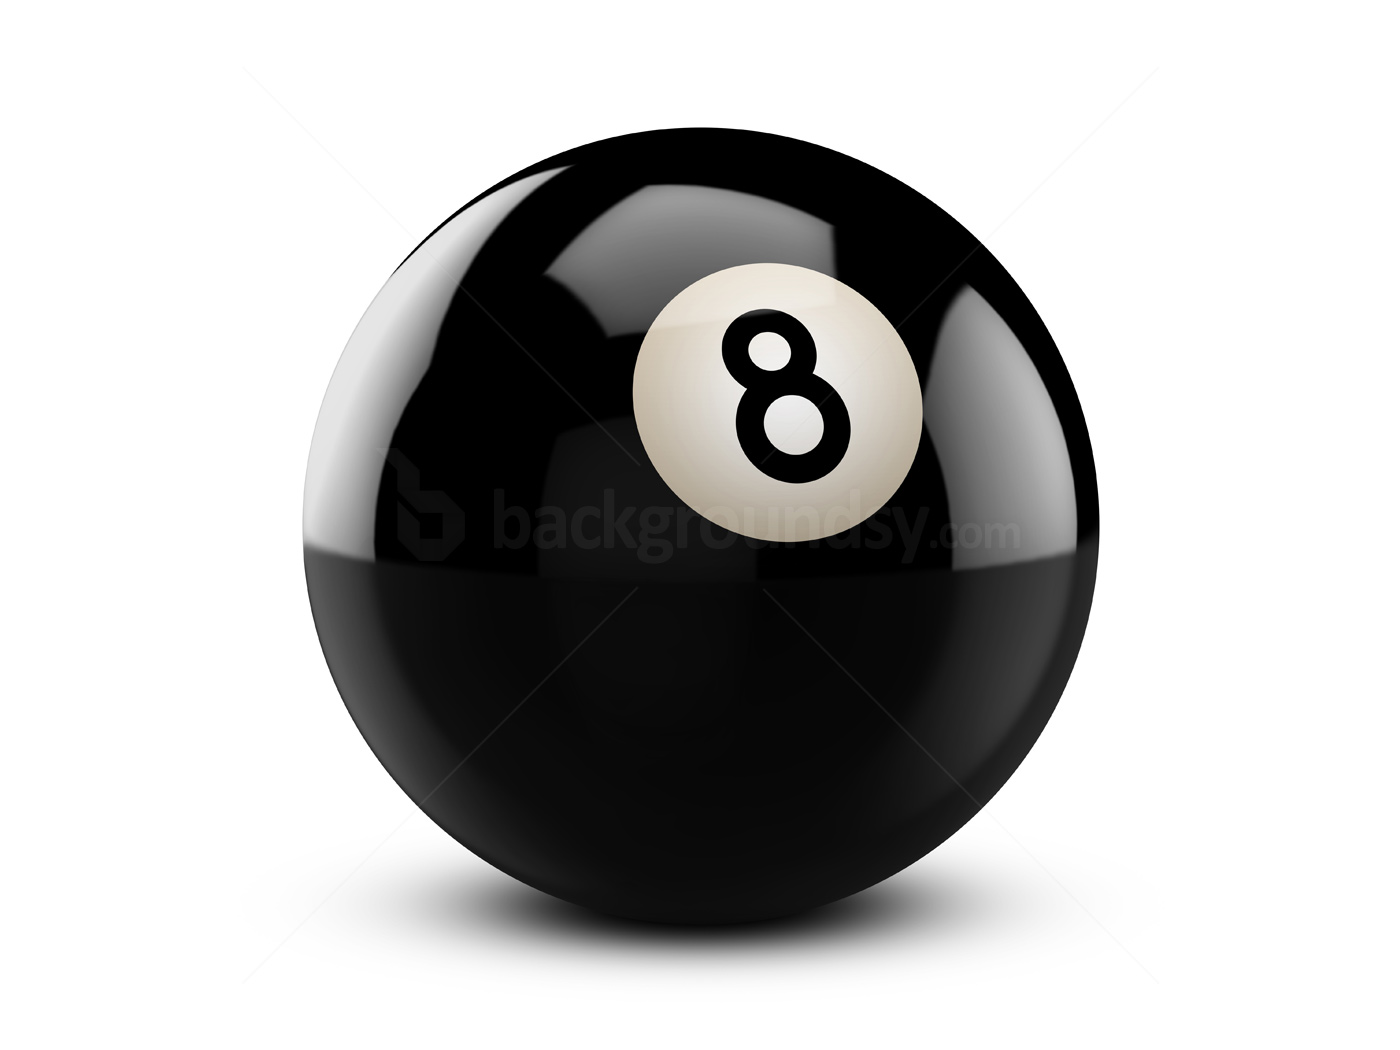 Pool Ball Pictures - Cliparts.co